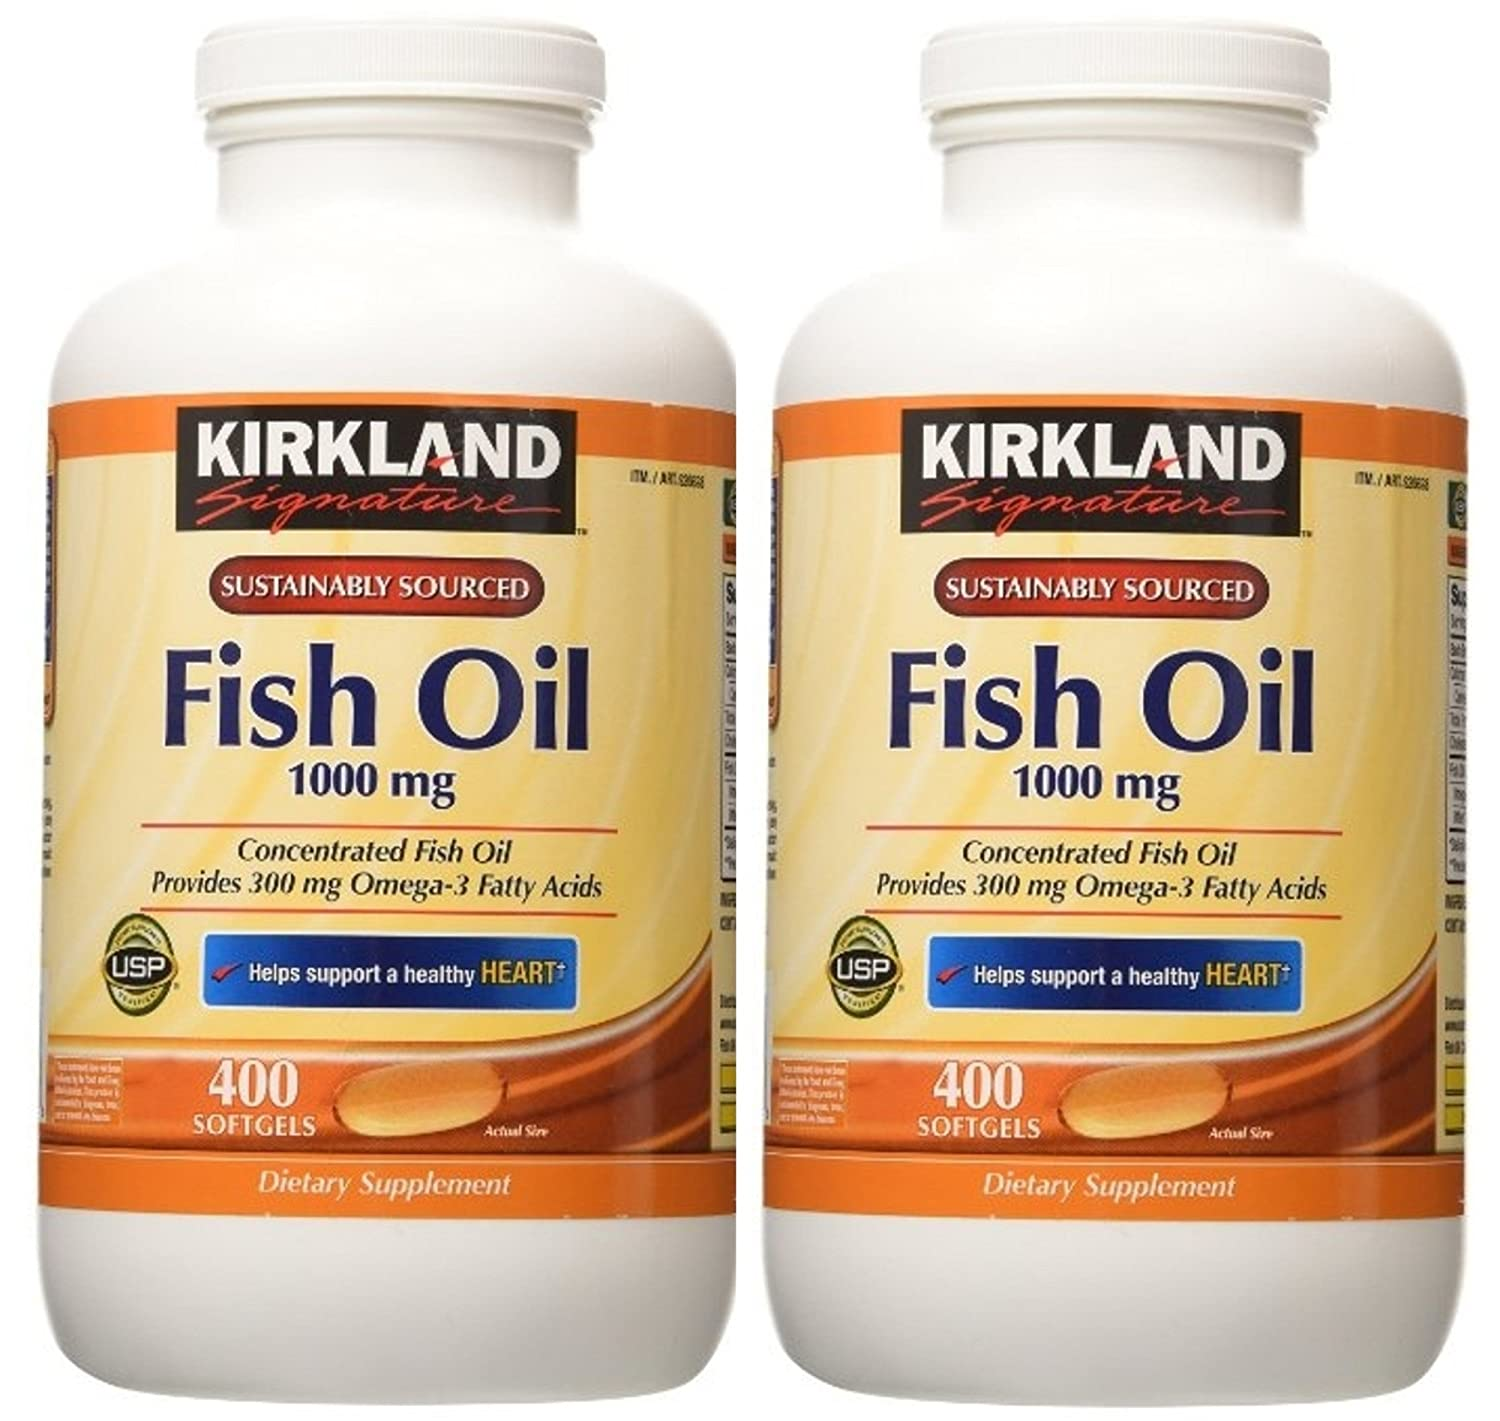 Medication discount coupons bvgg - Amazon Com Kirkland Signature Fish Oil Concentrate With Omega 3 Fatty Acids 400 Softgels 1000mg Health Personal Care